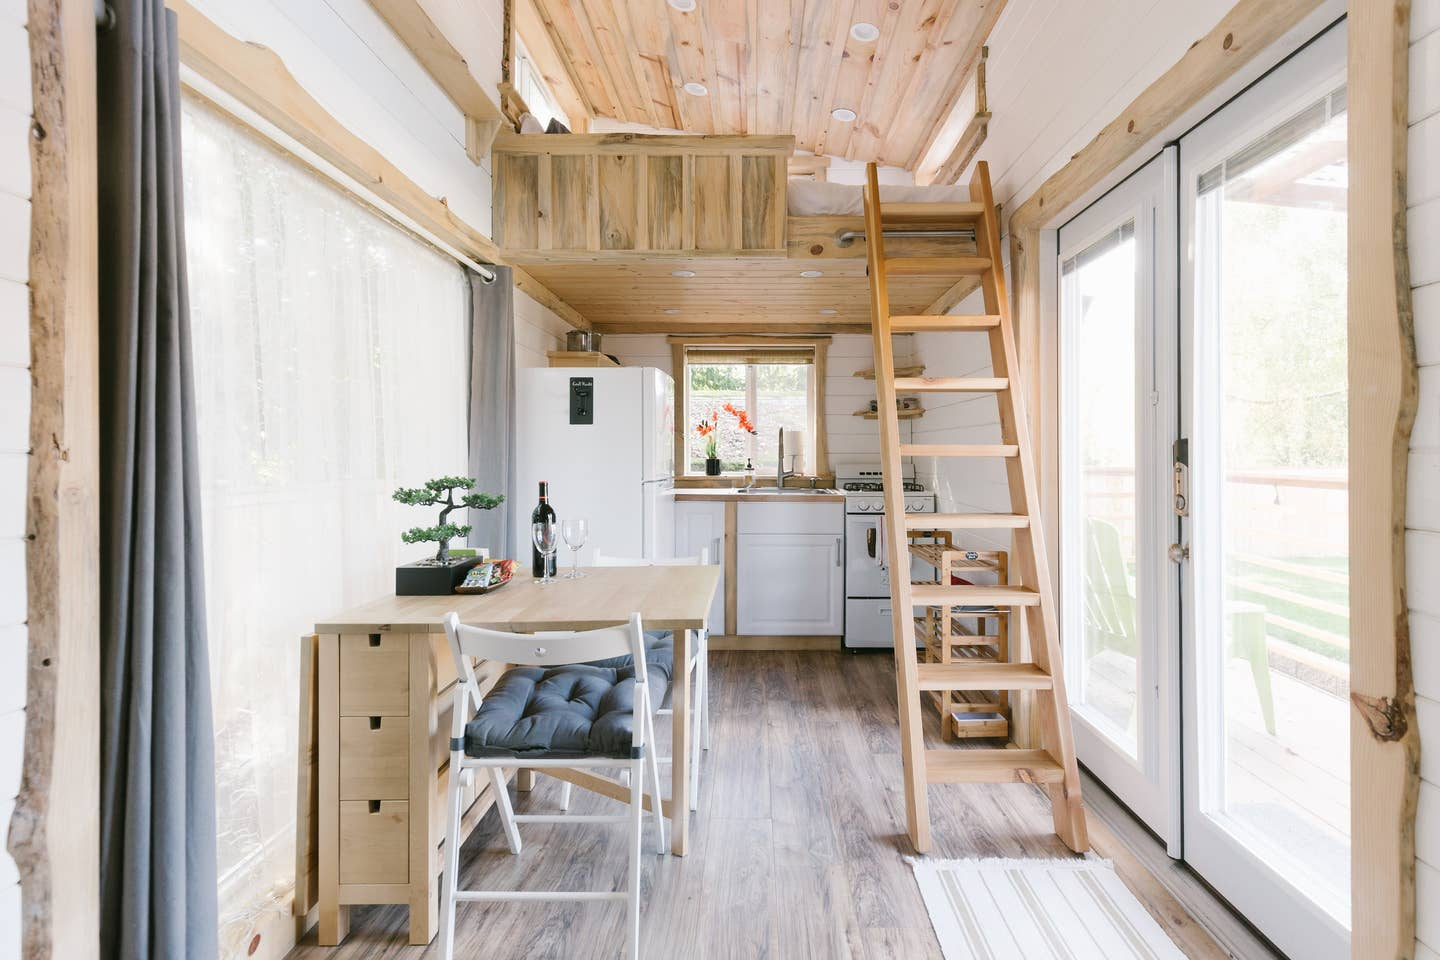 20 Tiny Houses in Washington You Can Rent on Airbnb in 2021!